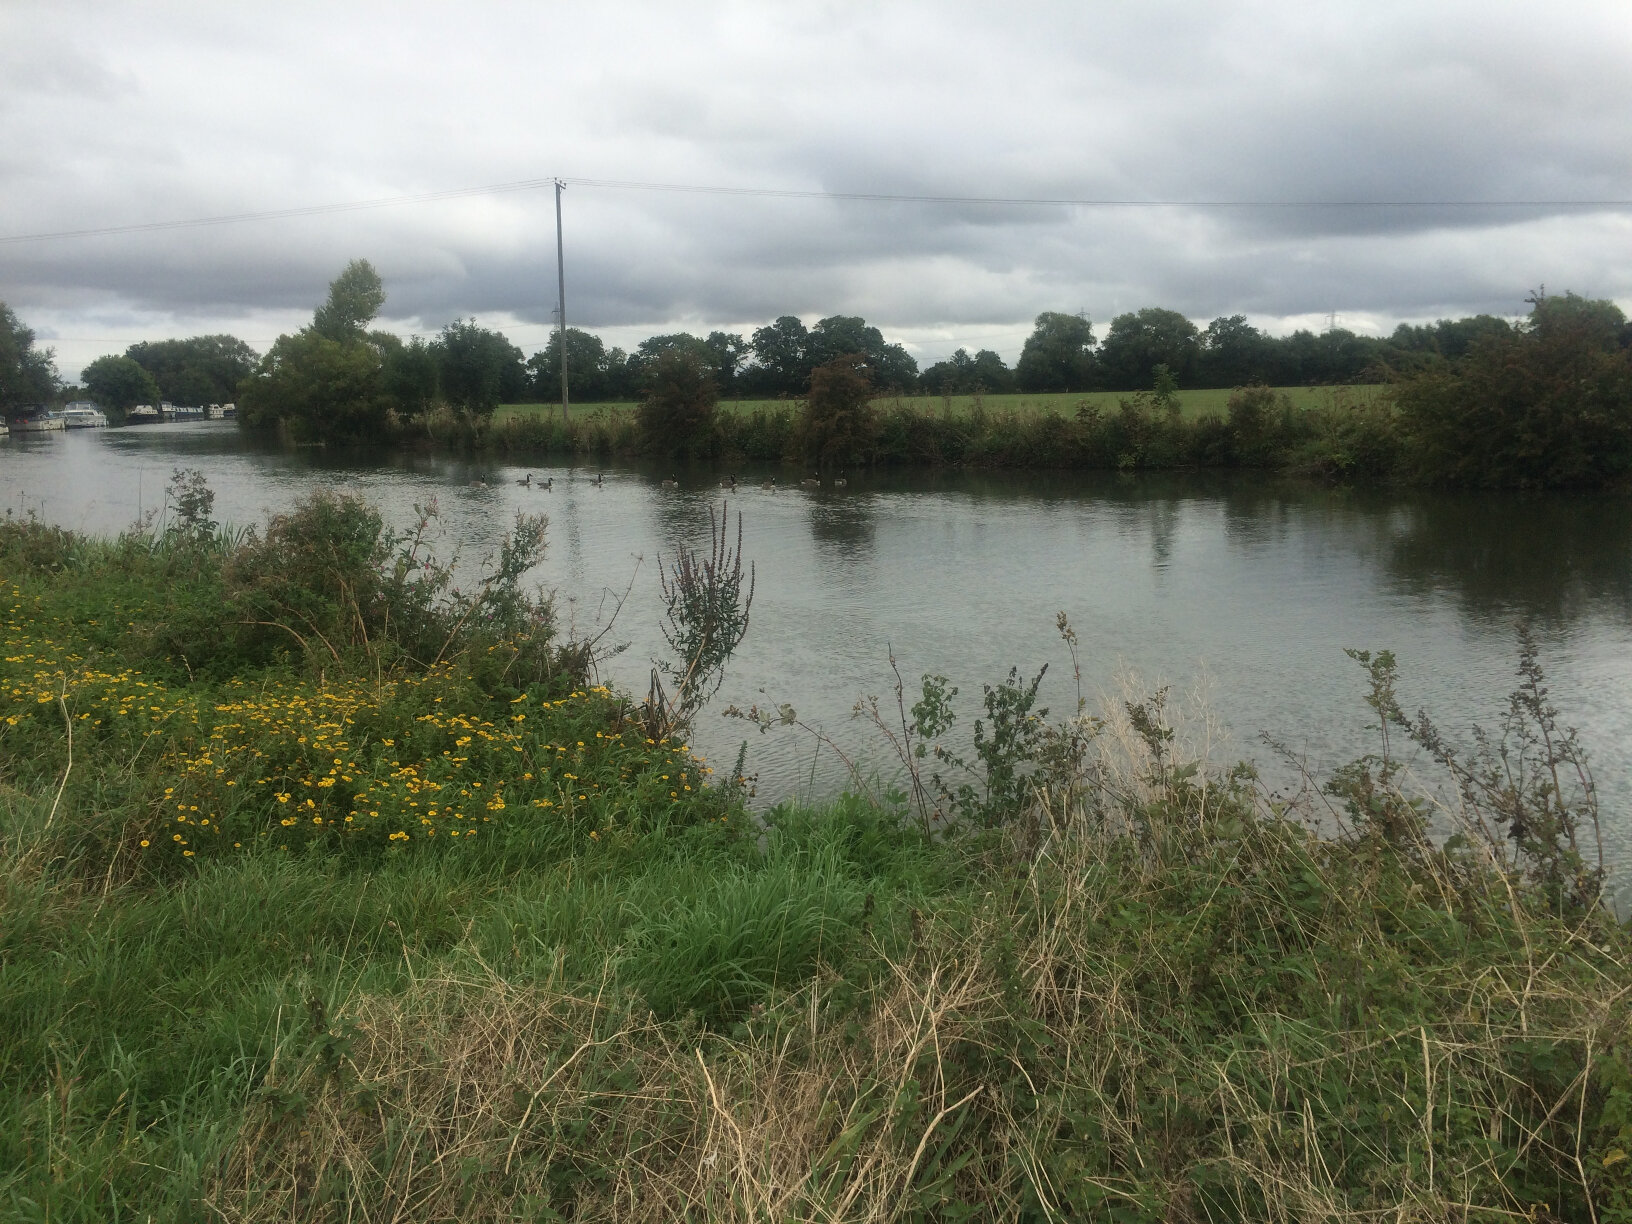 From Lechlade to Newbridge (29)